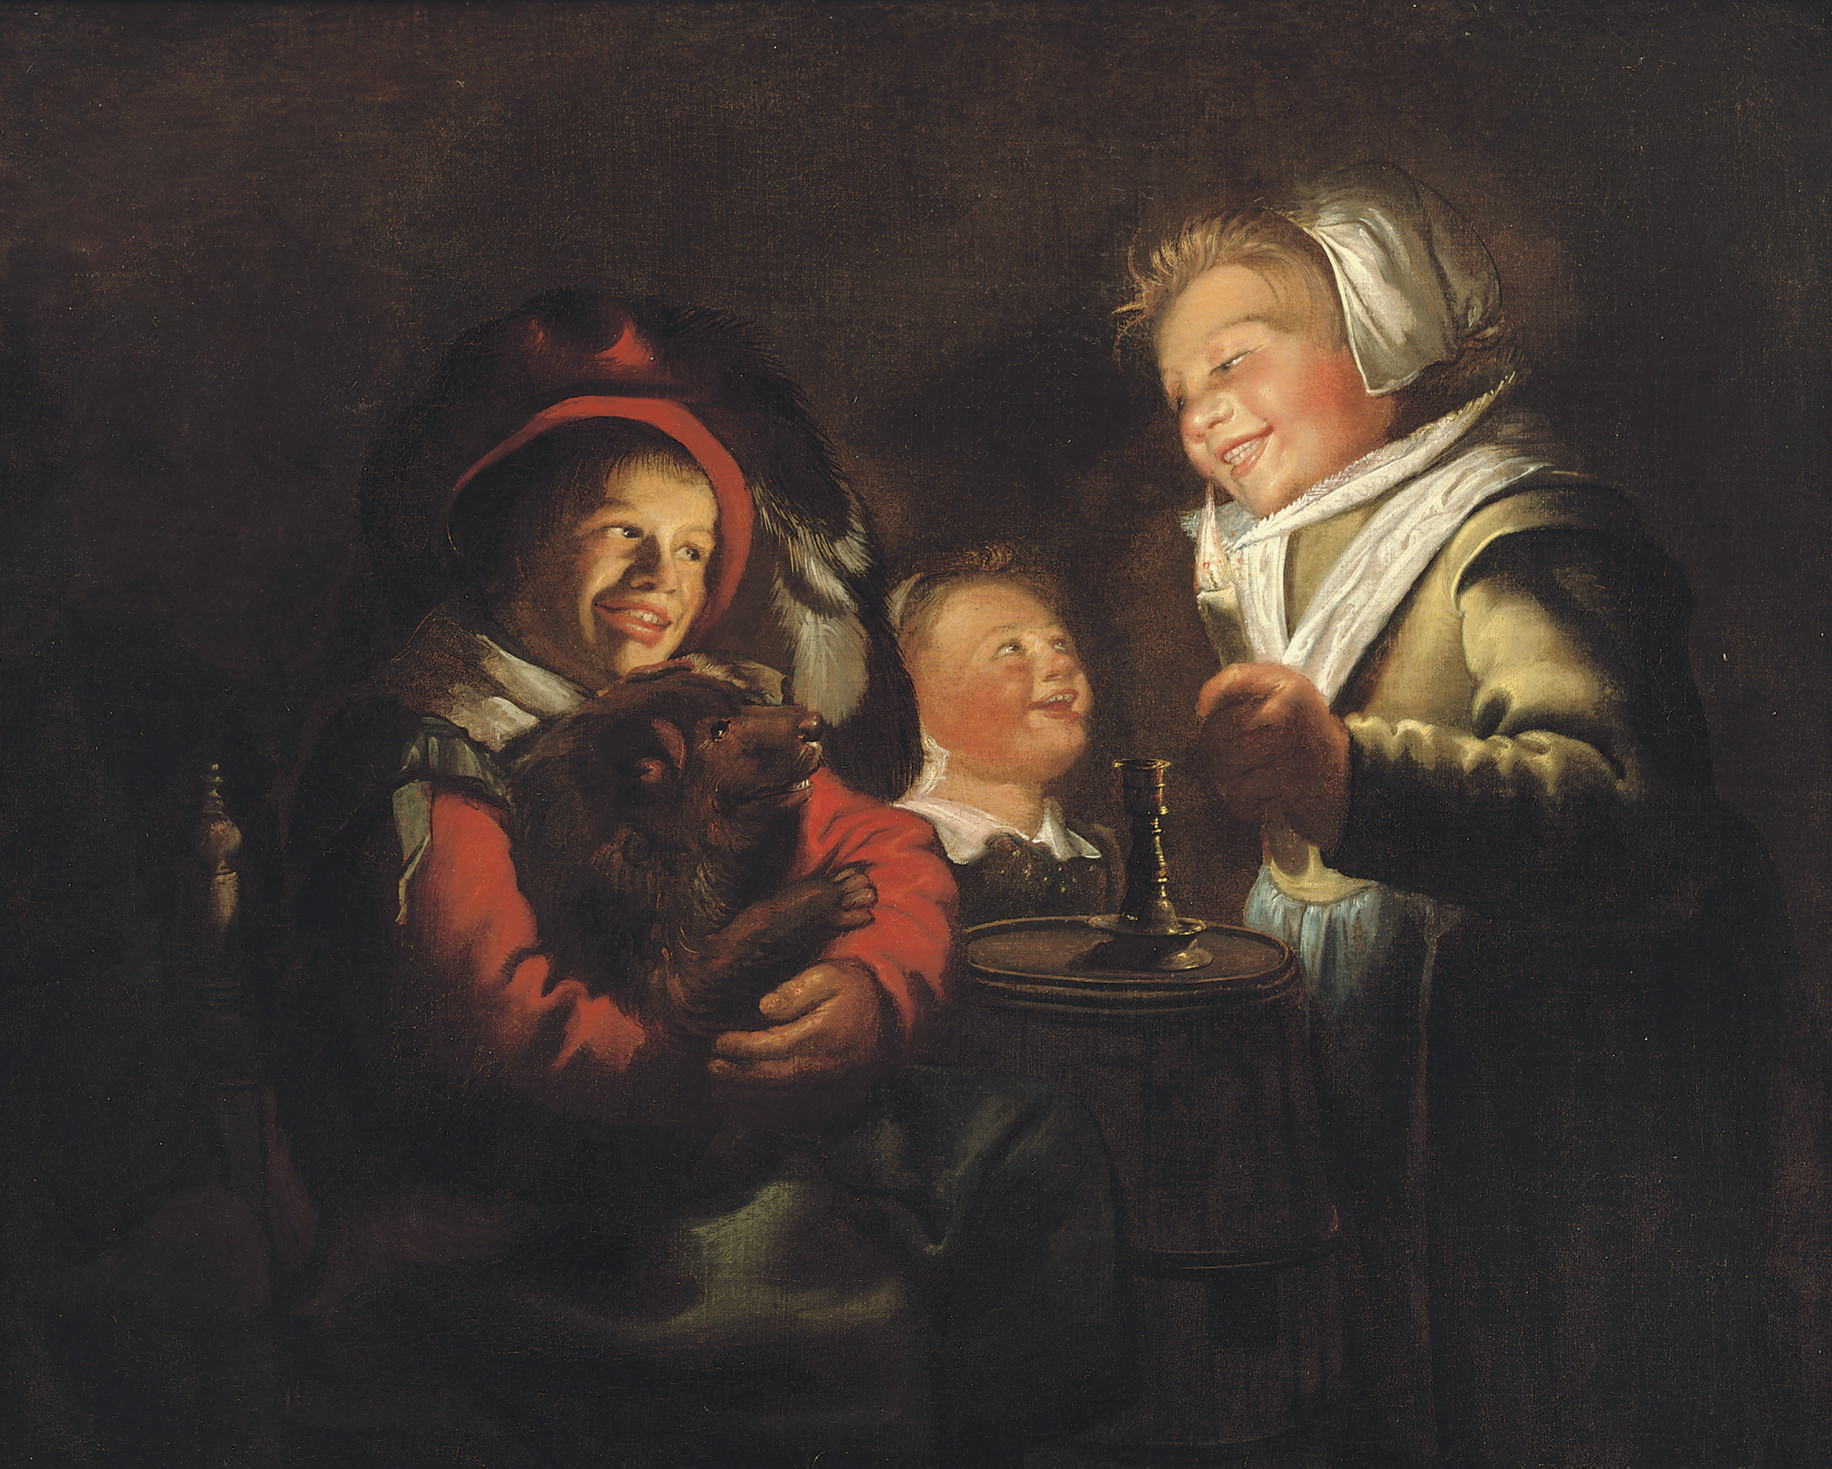 Two girls and a boy with a dog by candle light